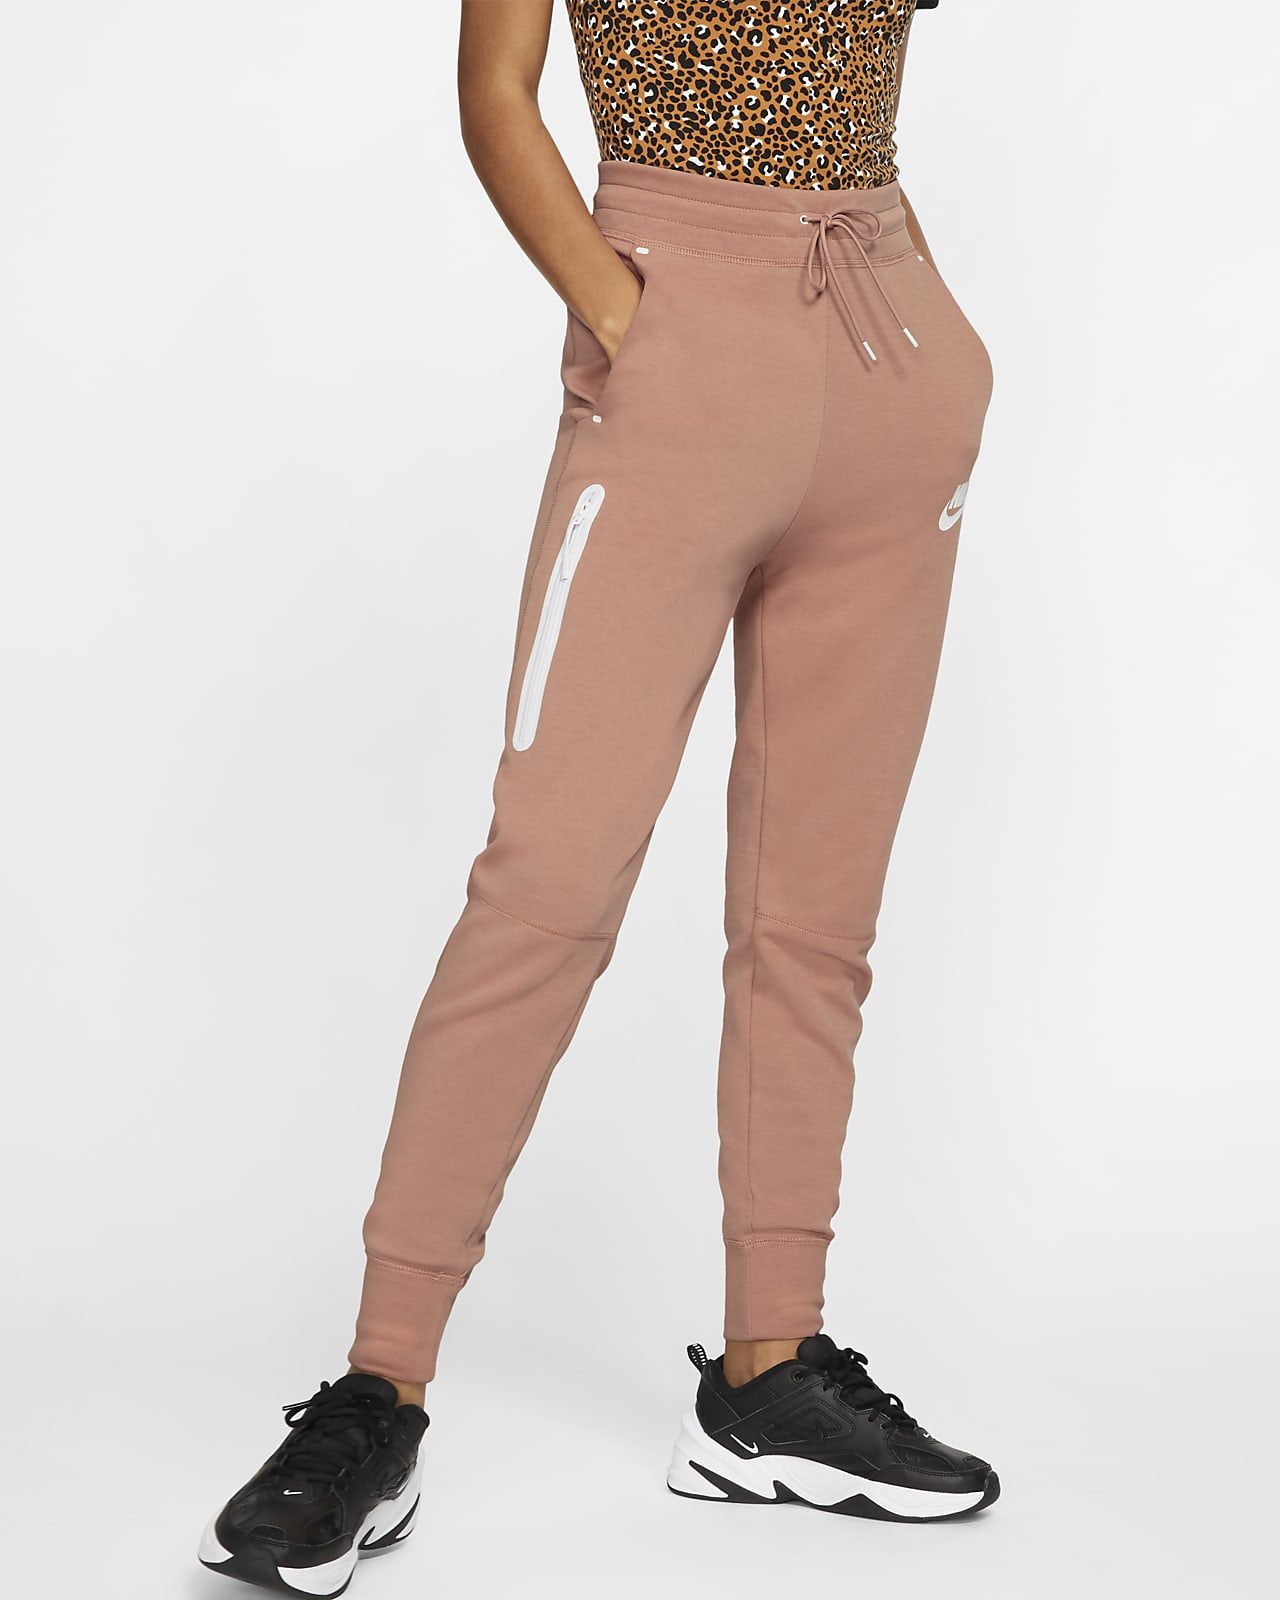 Nike Sportswear Tech Fleece Women's Pants